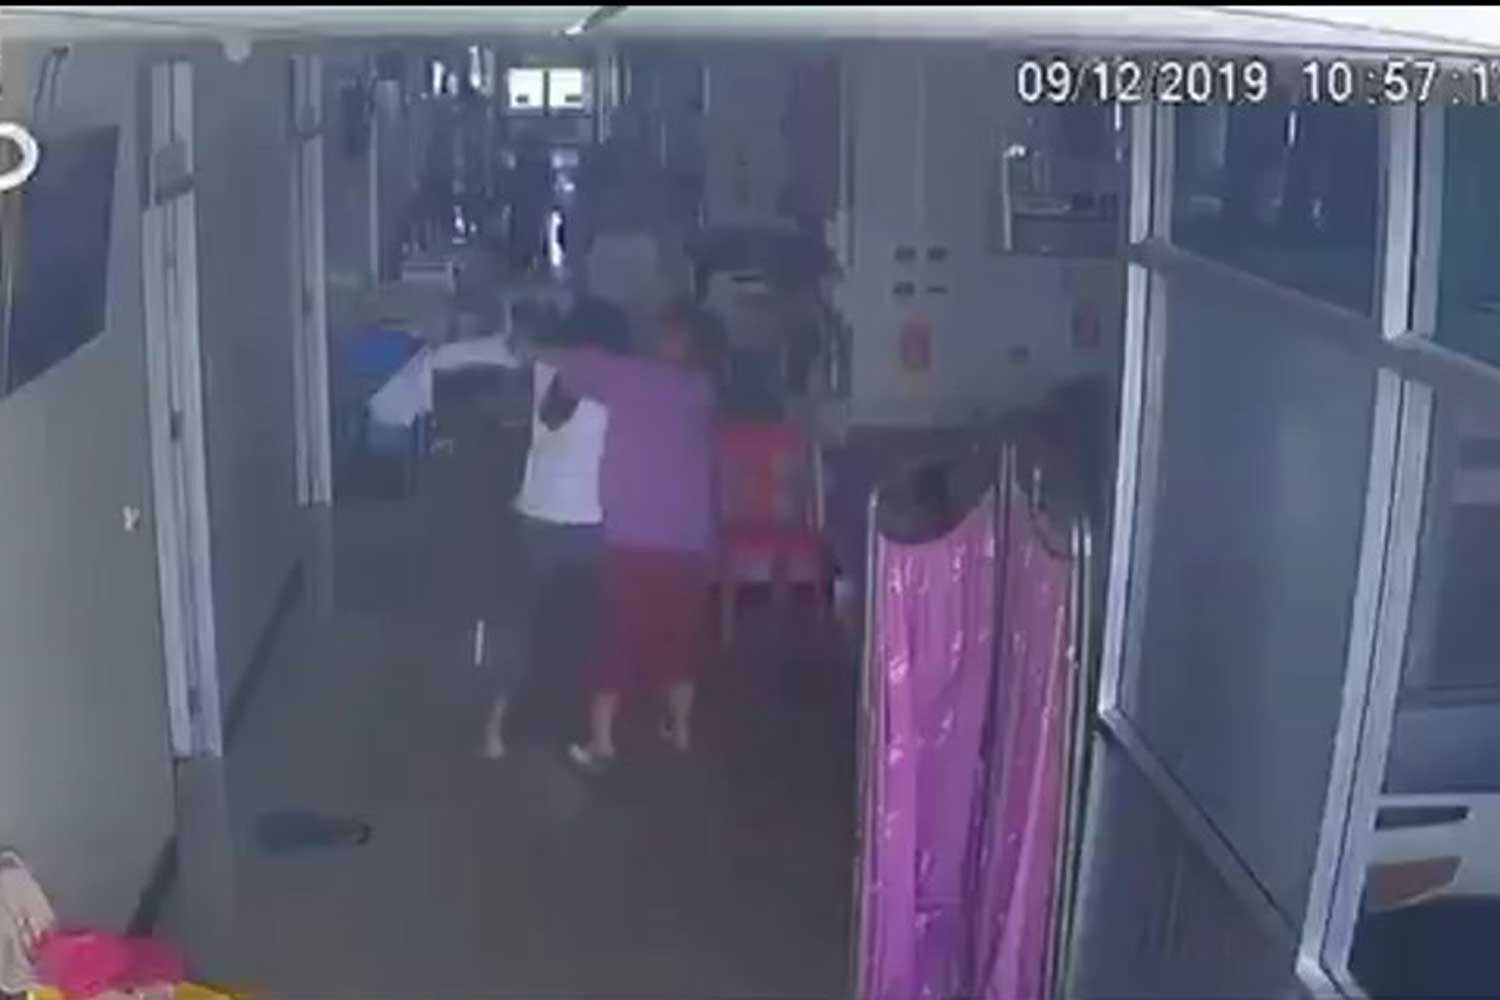 Security camera footage shows the inpatient attacking a doctor at a hospital in Khon Kaen province on Monday. (Photo supplied)